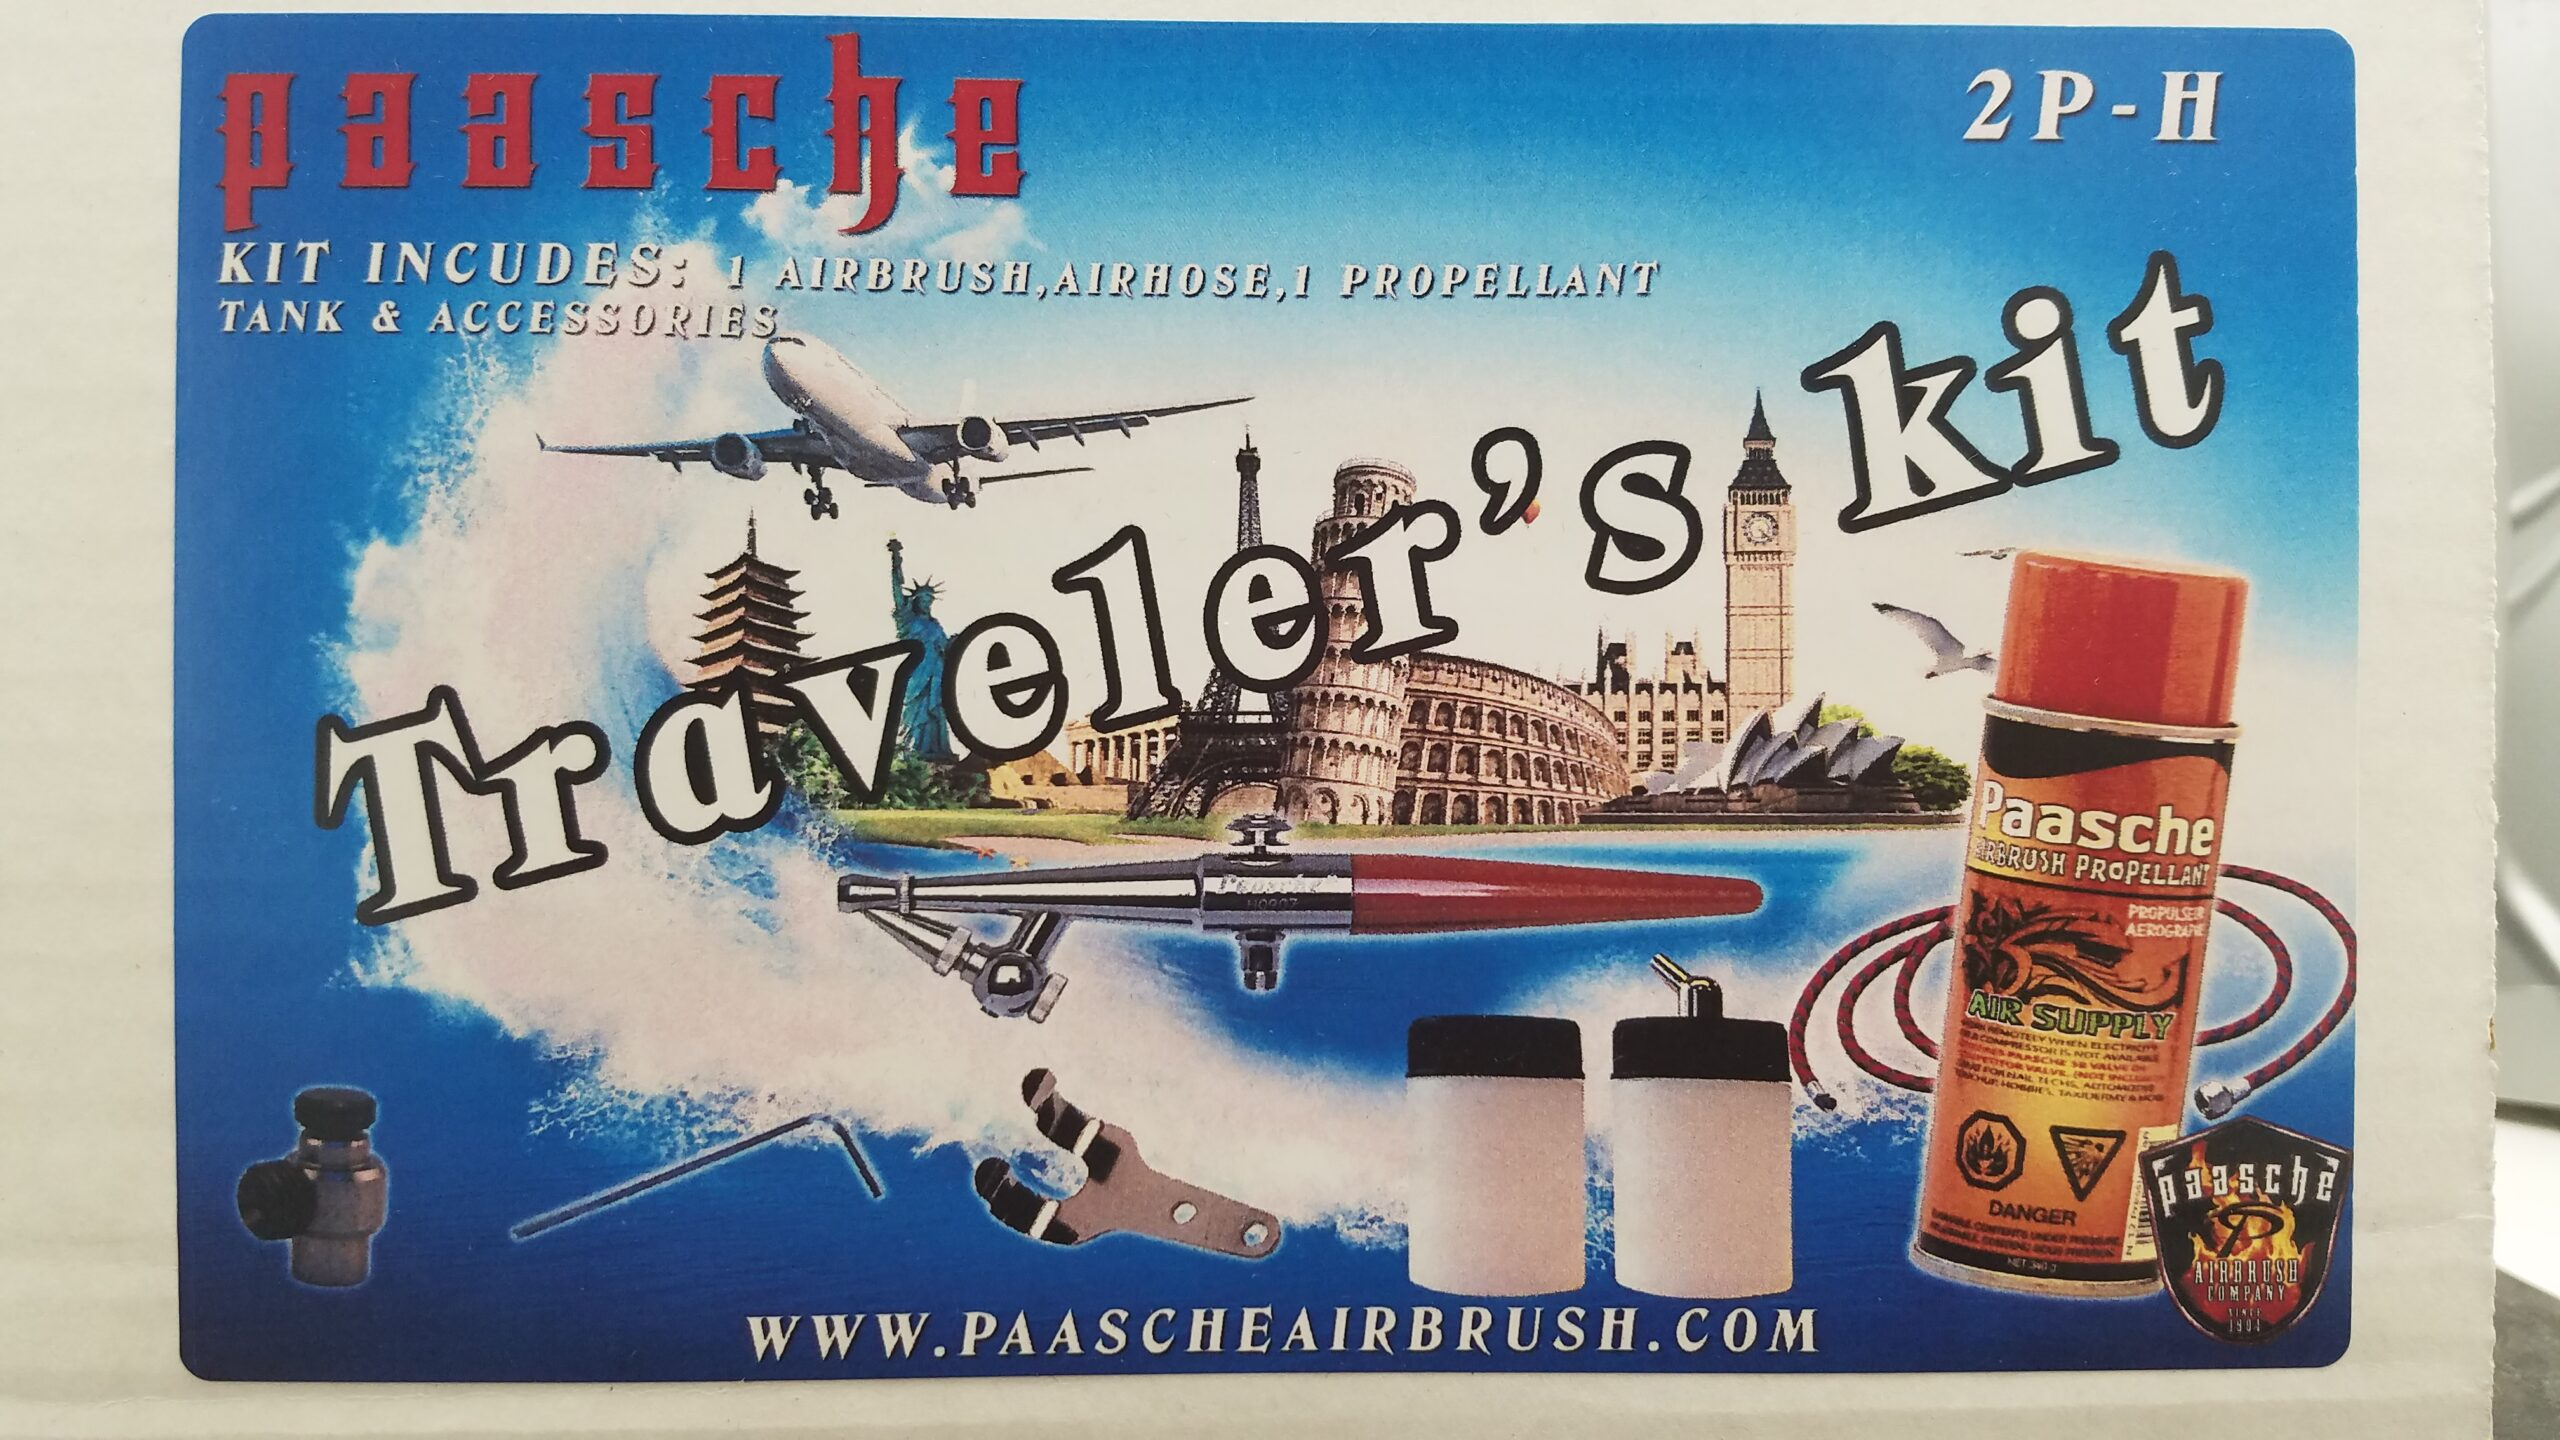 Paasche Complete Airbrush Kit